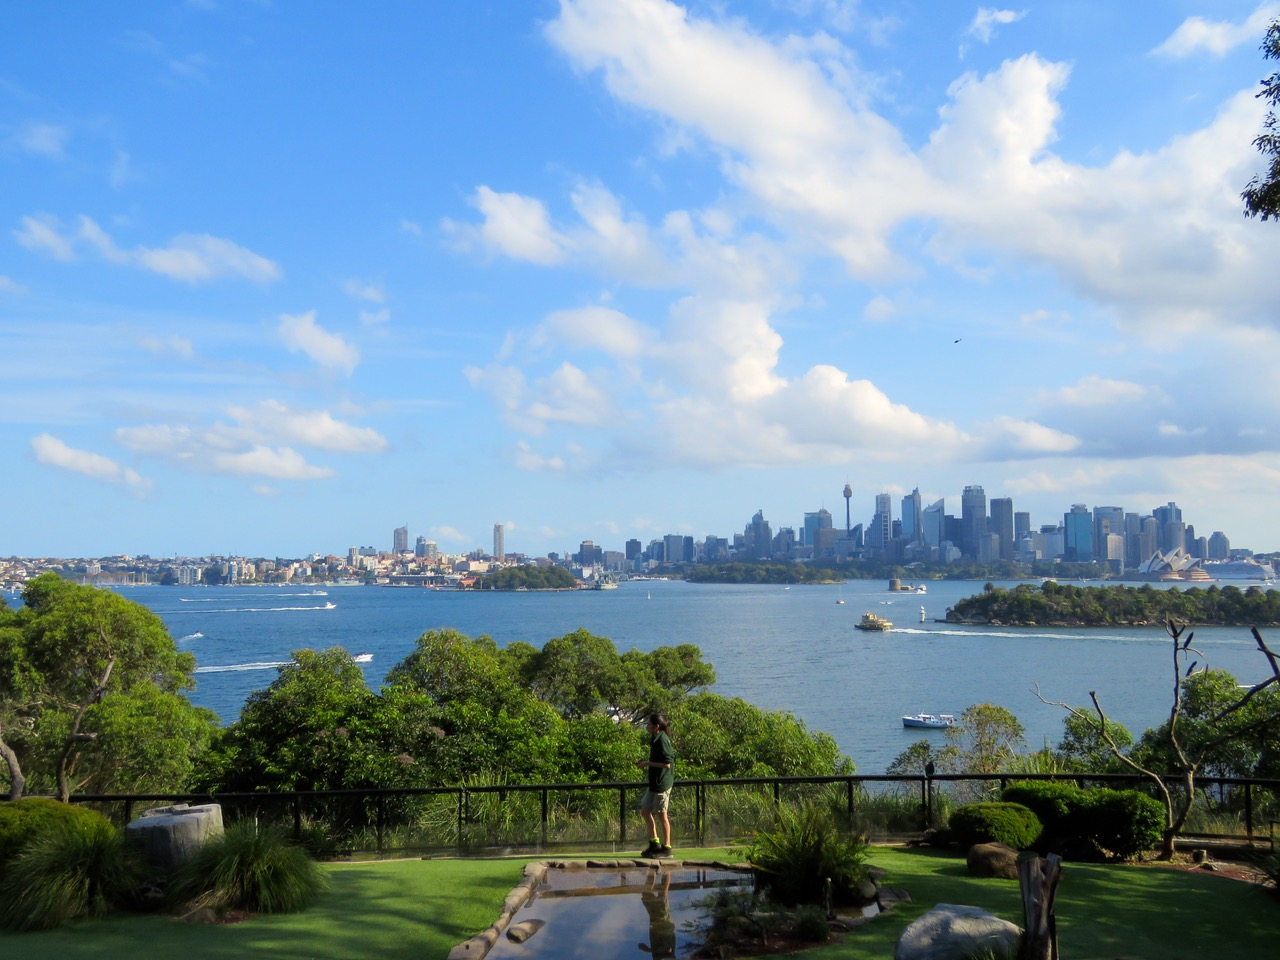 13SydneyHarbour